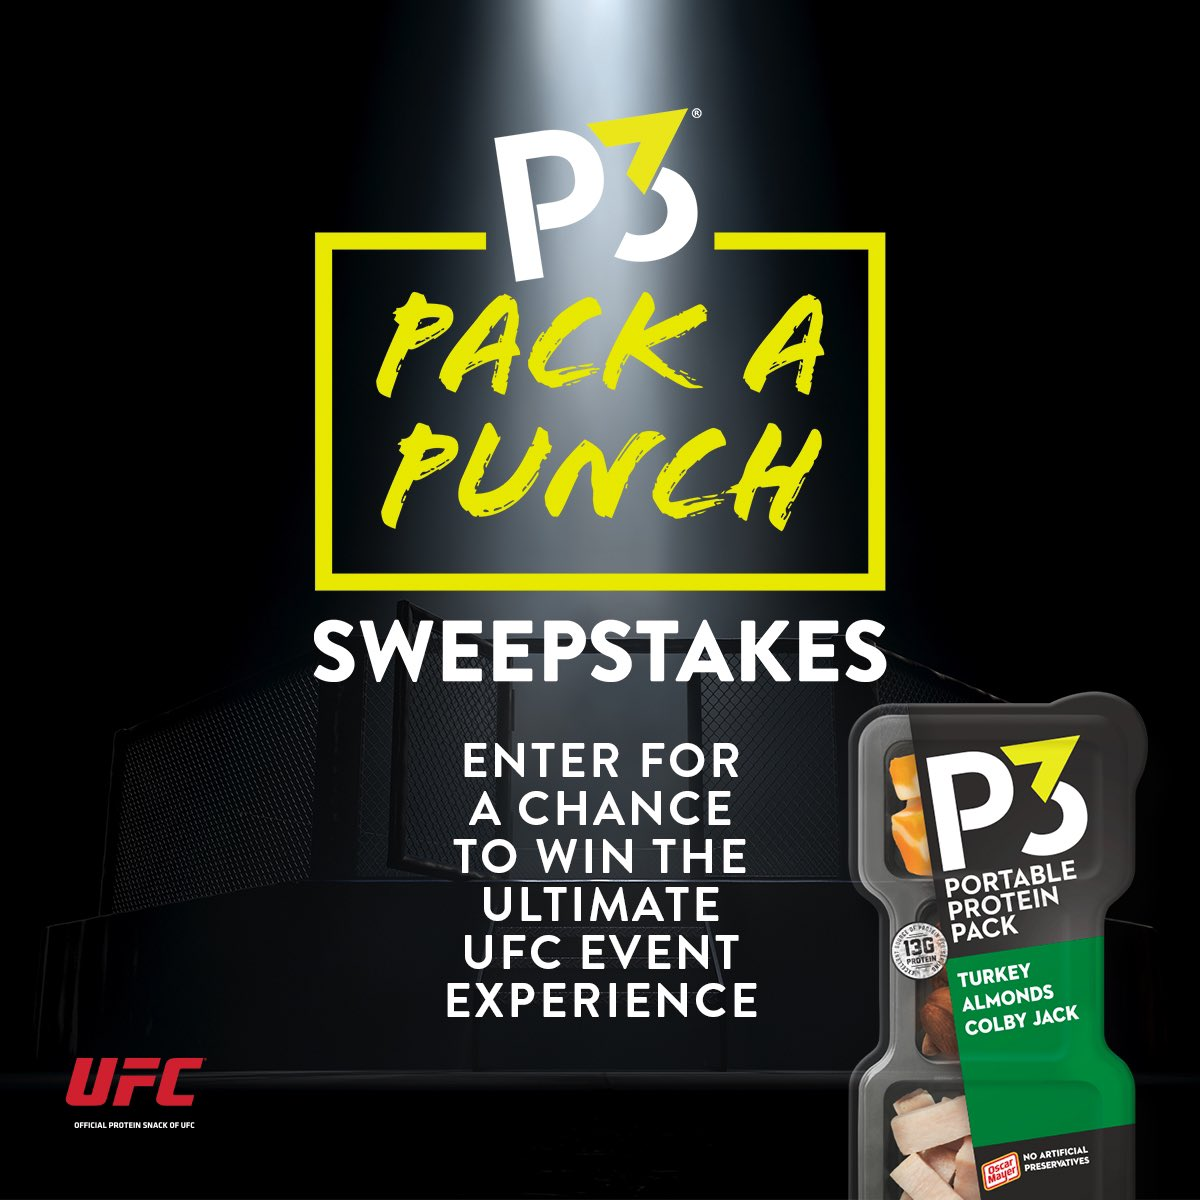 It's your chance to live that fight life with the ultimate UFC VIP prize pack. Think you got what it takes? Double your chances of winning with any purchase of P3 products.  https://t.co/tuRh4HRaBQ #P3PackaPunchSweepstakes https://t.co/NaaOLCXaGQ